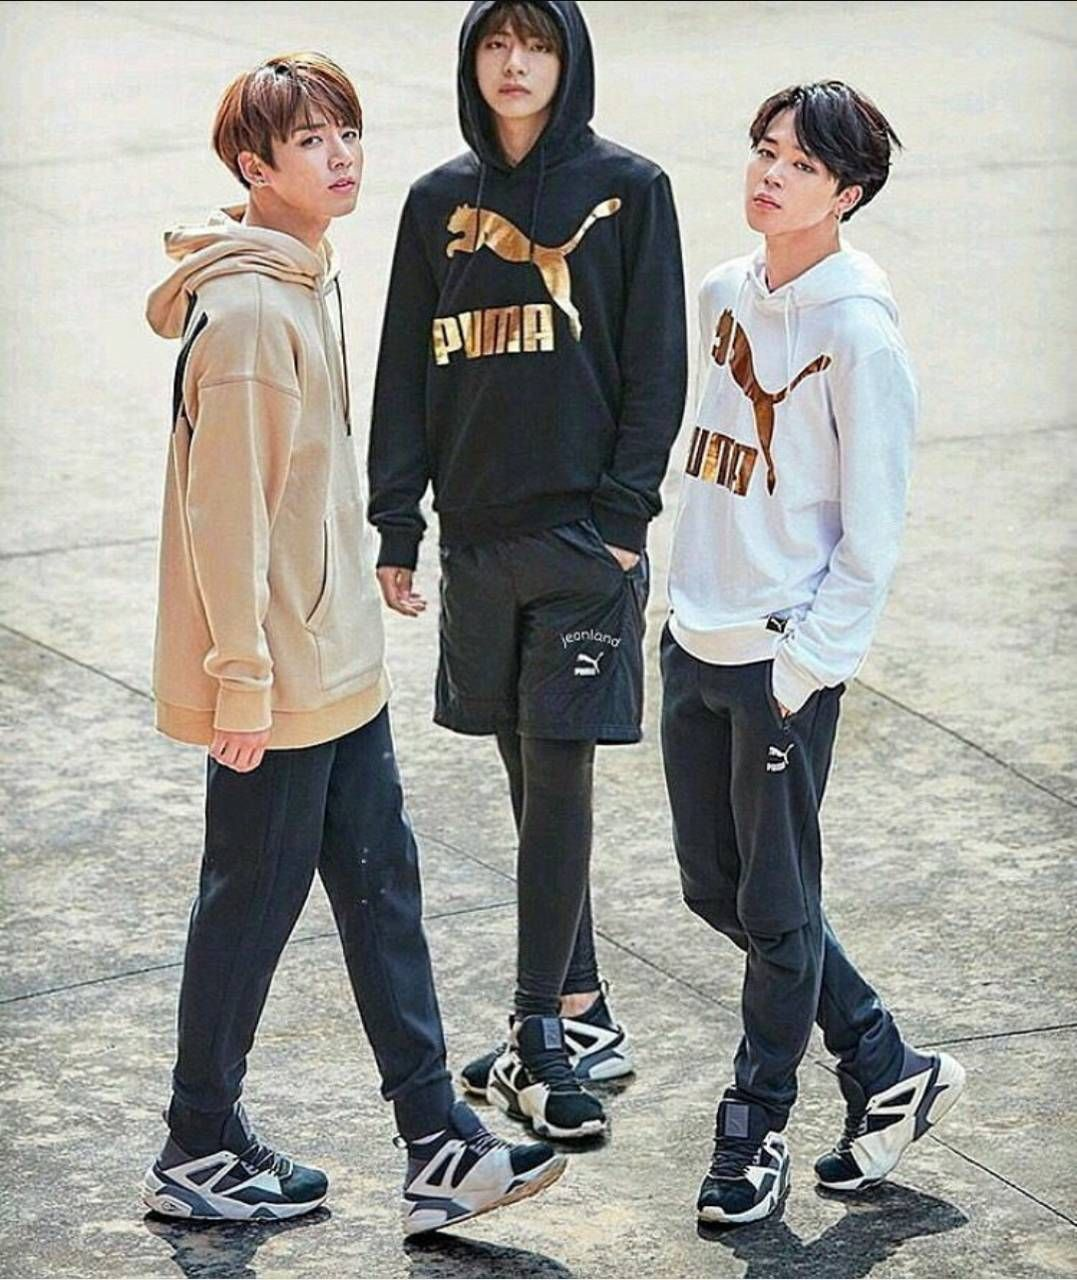 Download Bts Maknae Line Wallpaper By Shuggiebear2006 A1 Free On Zedge Now Browse Millions Of Popular Bts Wallpapers And Meninos Bts Imagens Bts Jungkook